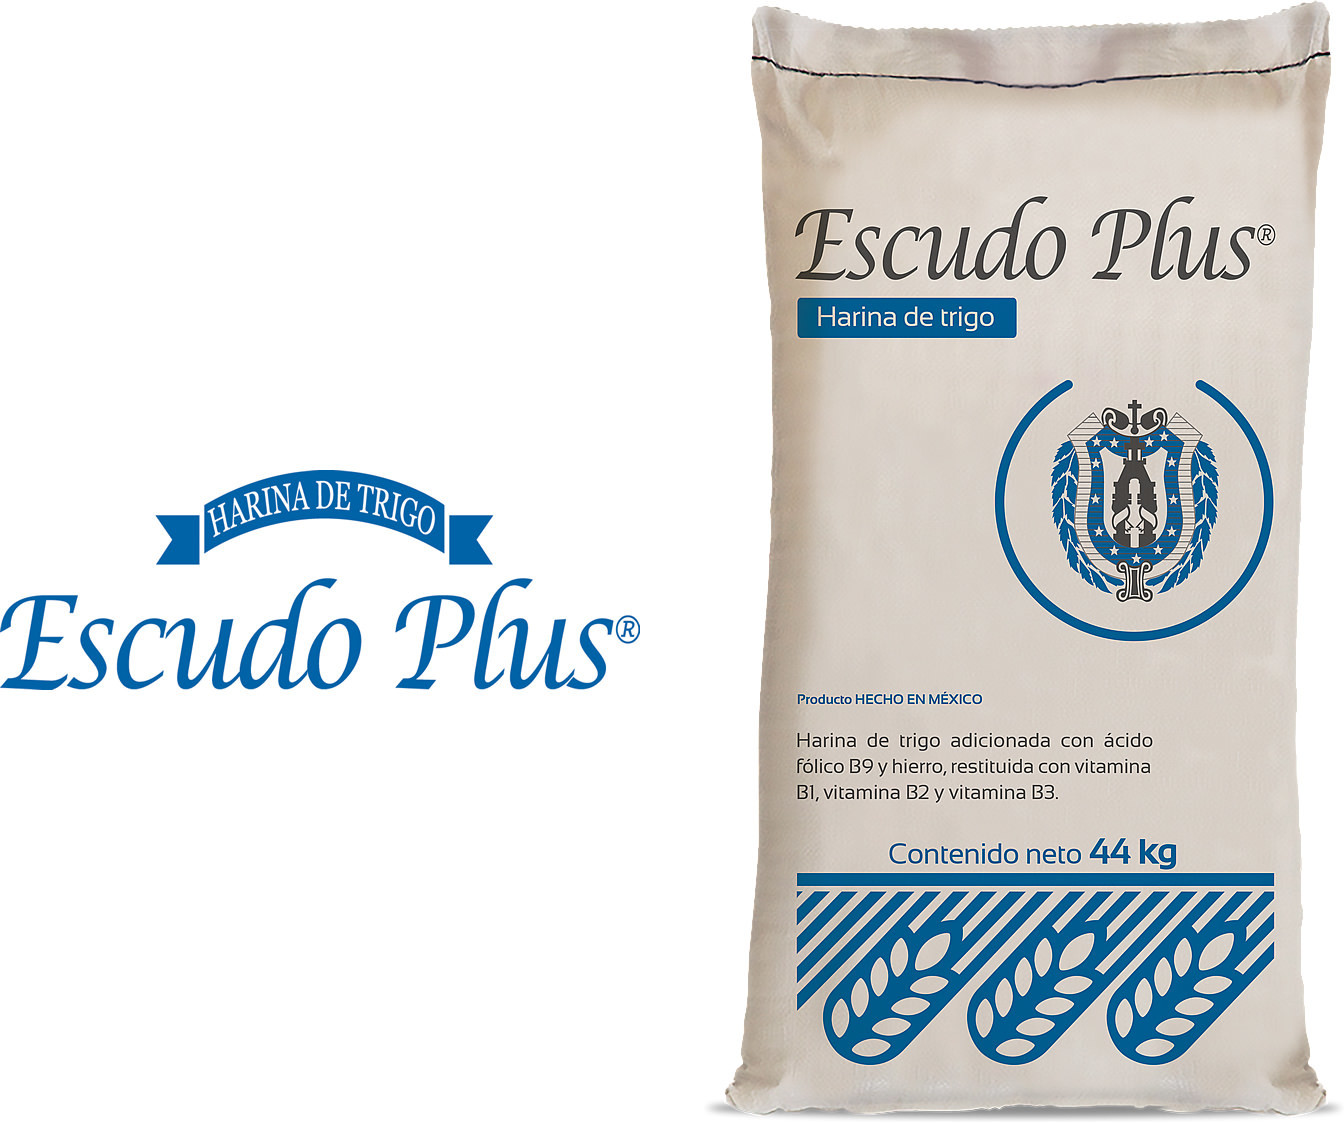 Escudo Plus is an all-purpose white flour.